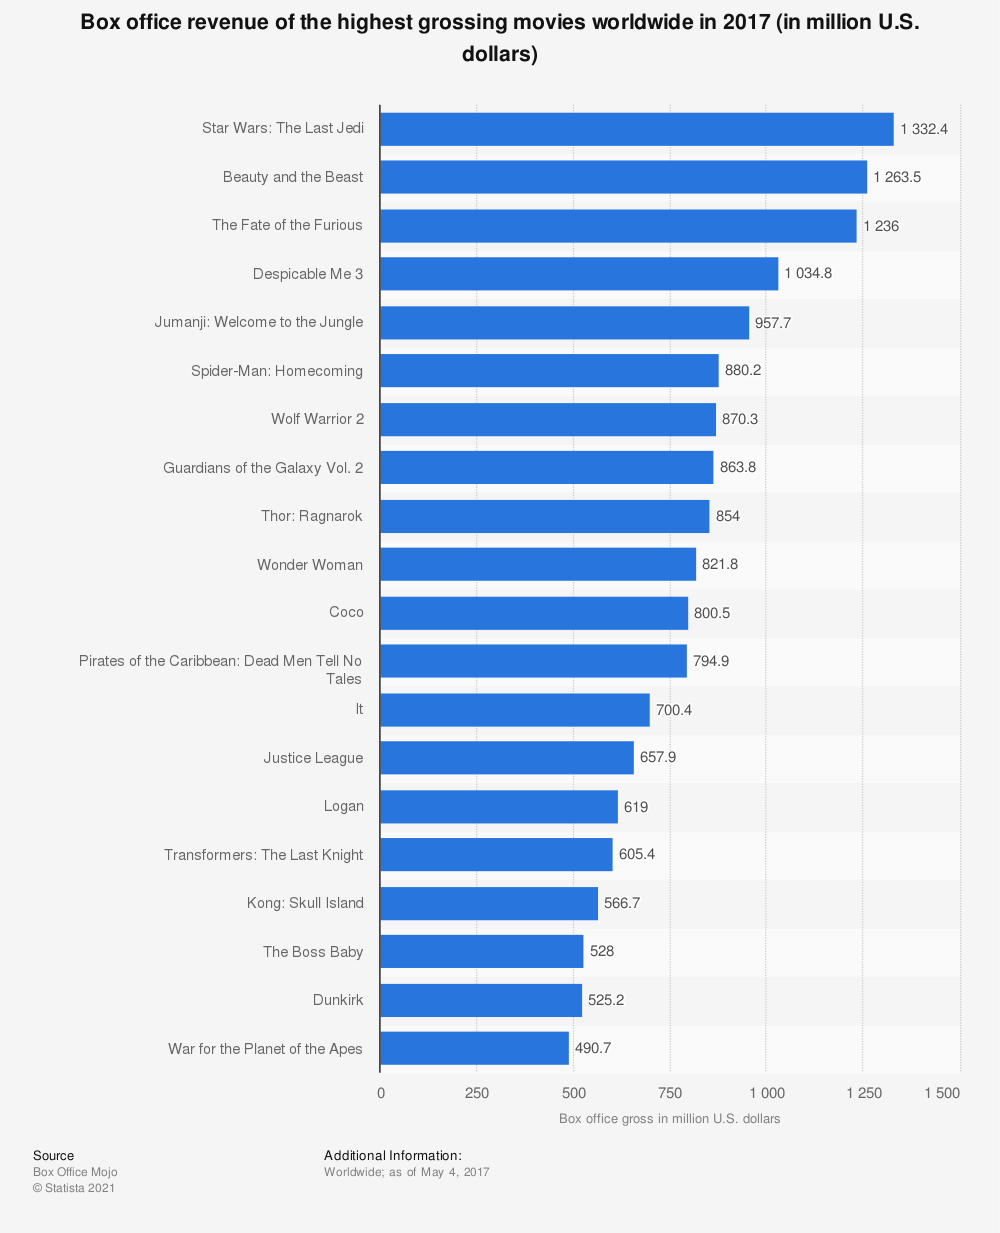 Statistic: Box office revenue of the highest grossing movies worldwide in 2017 (in million U.S. dollars) | Statista